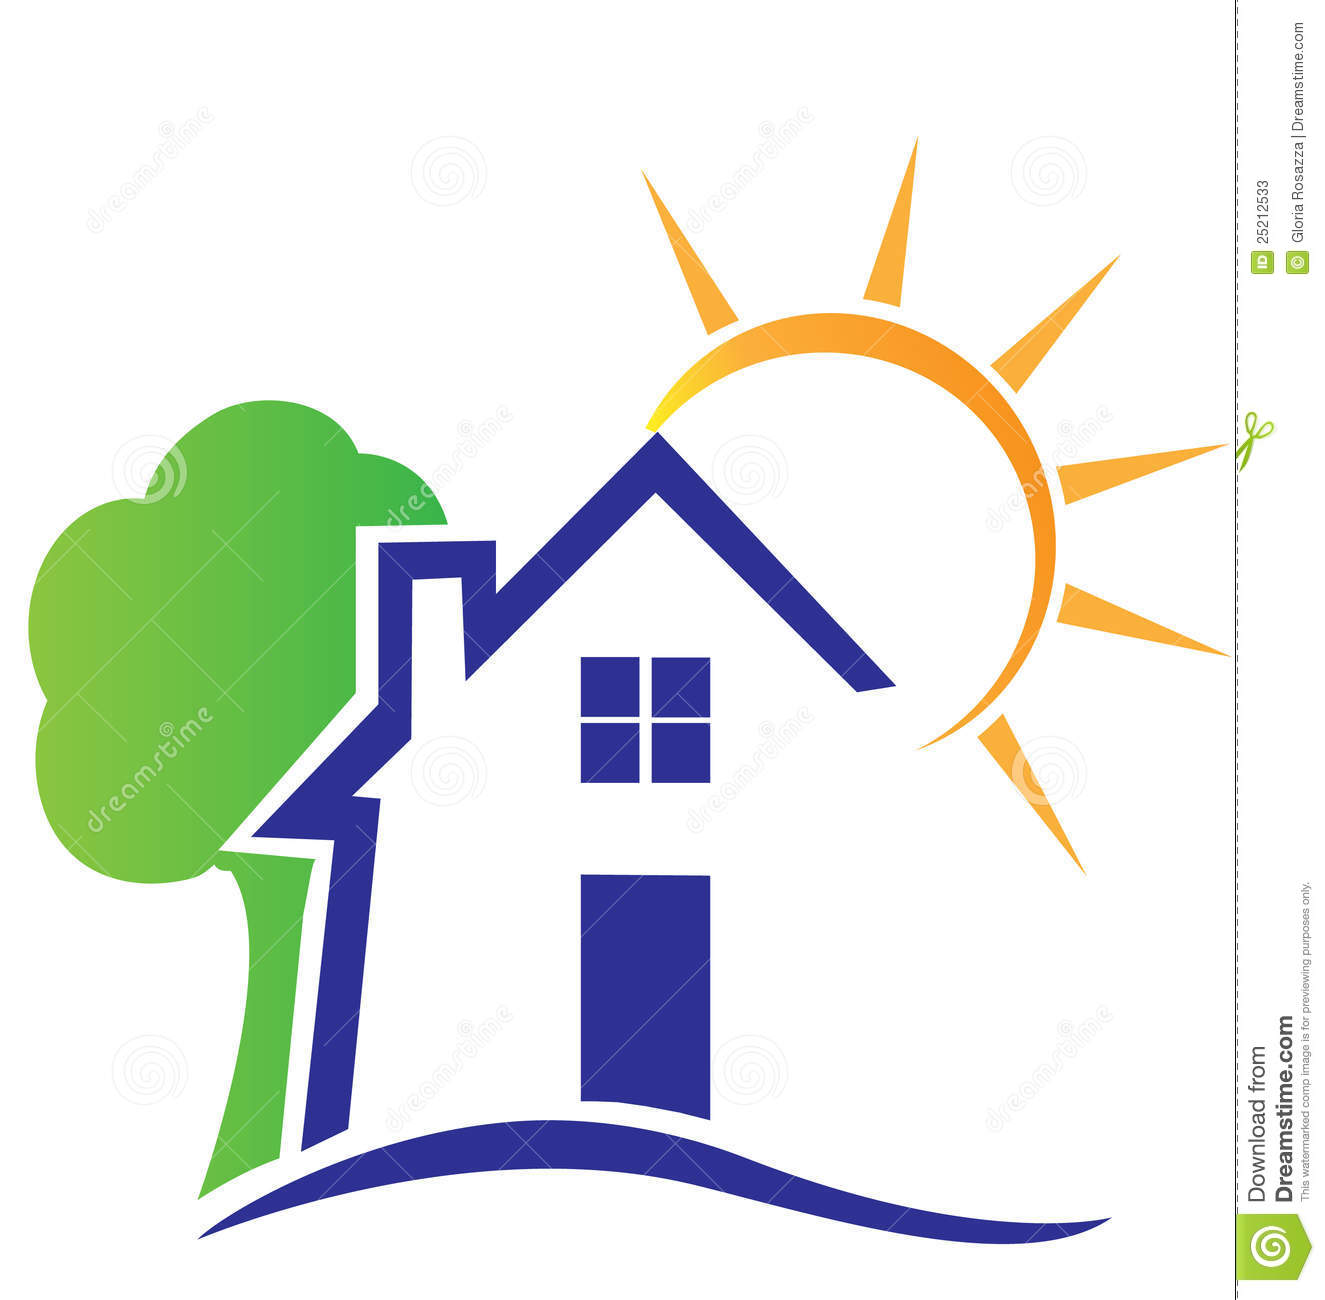 House Sun And Tree Logo Stock Vector. Illustration Of